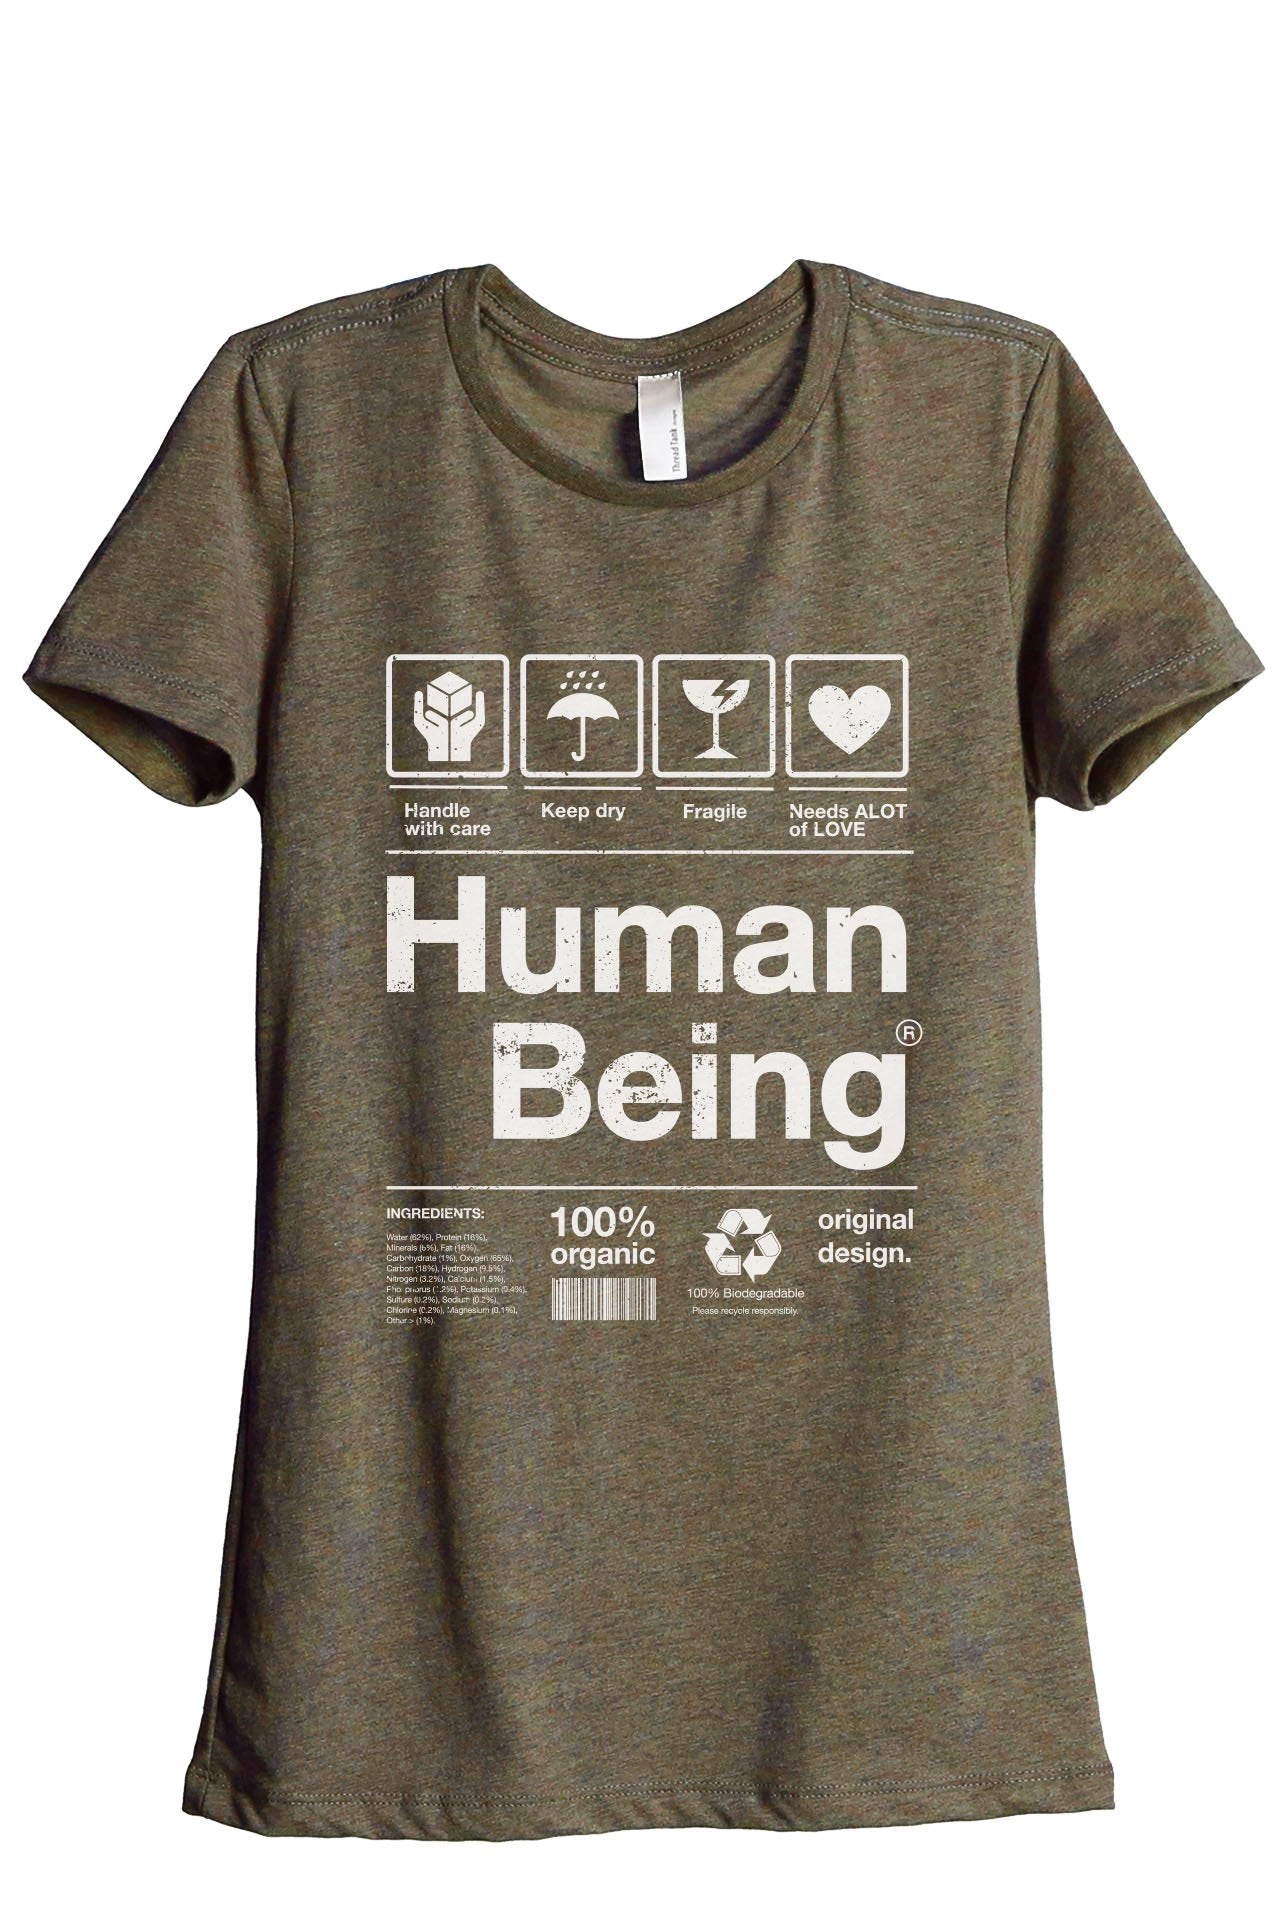 Human Being Women's Relaxed Crewneck T-Shirt Top Tee Heather Sage